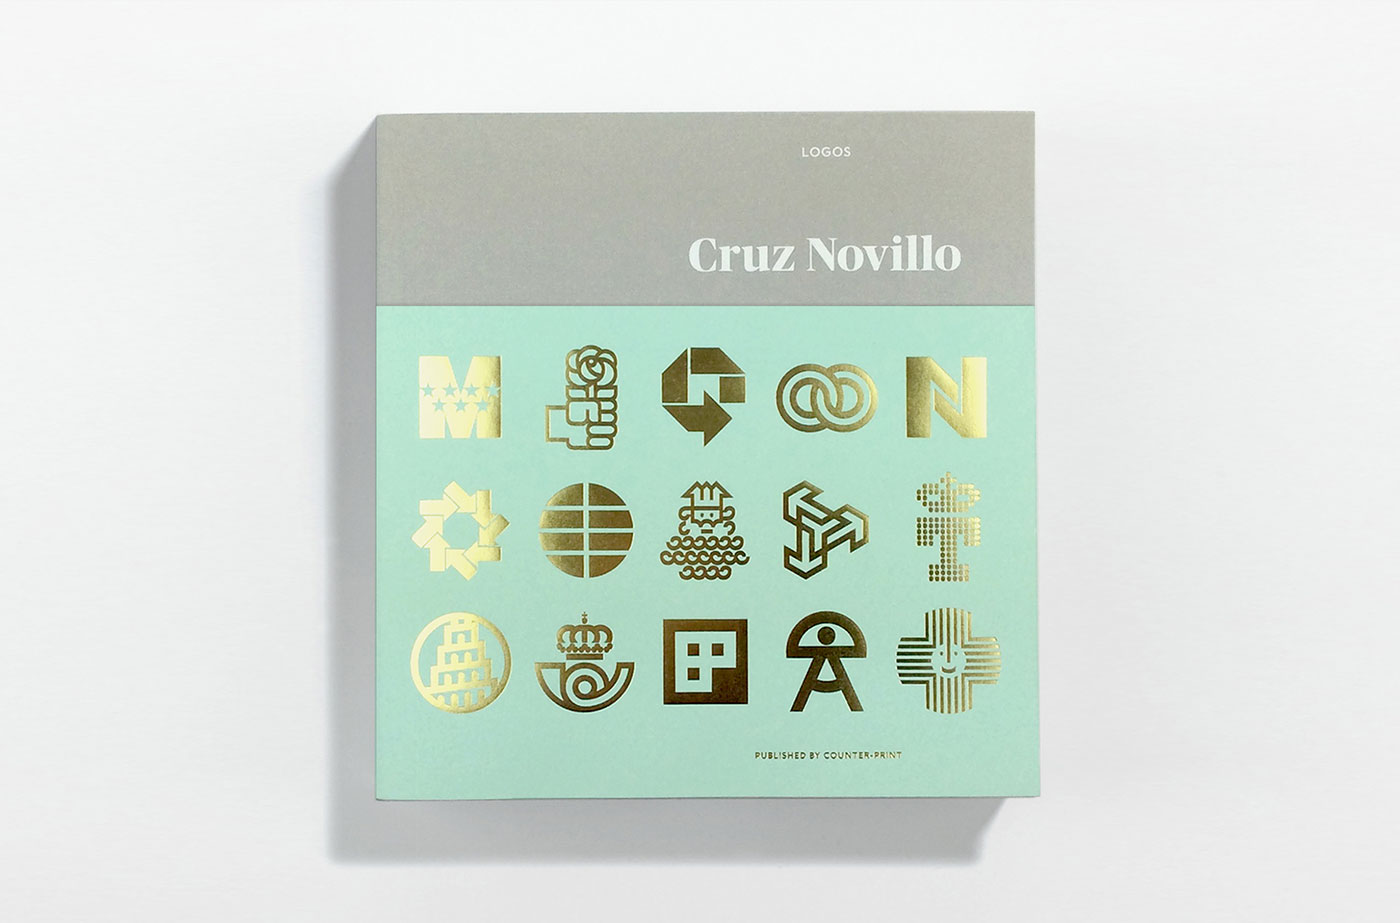 Cruz Novillo logo book